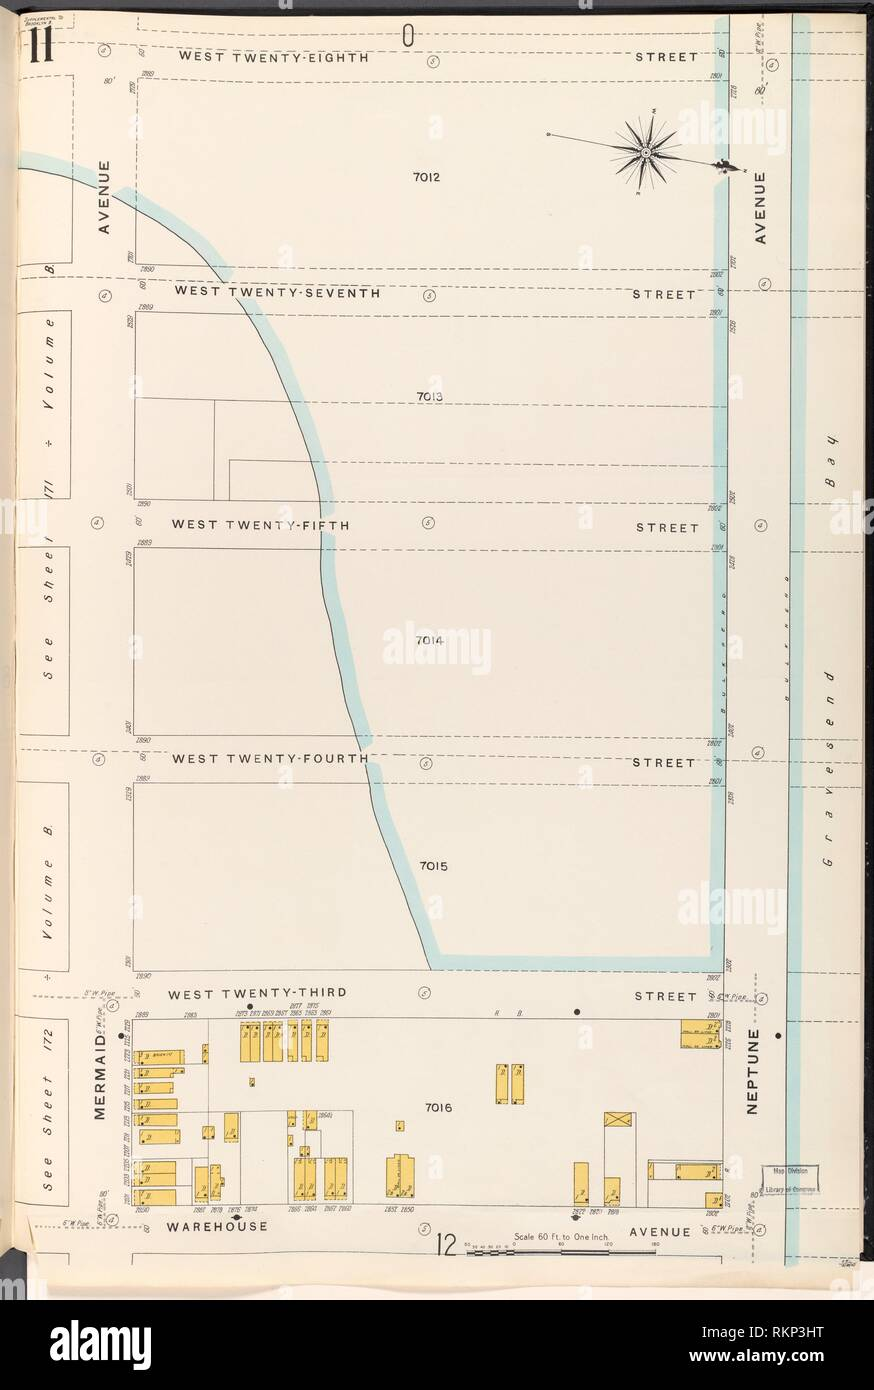 hight resolution of brooklyn vol b plate no 11 map bounded by w 28th st